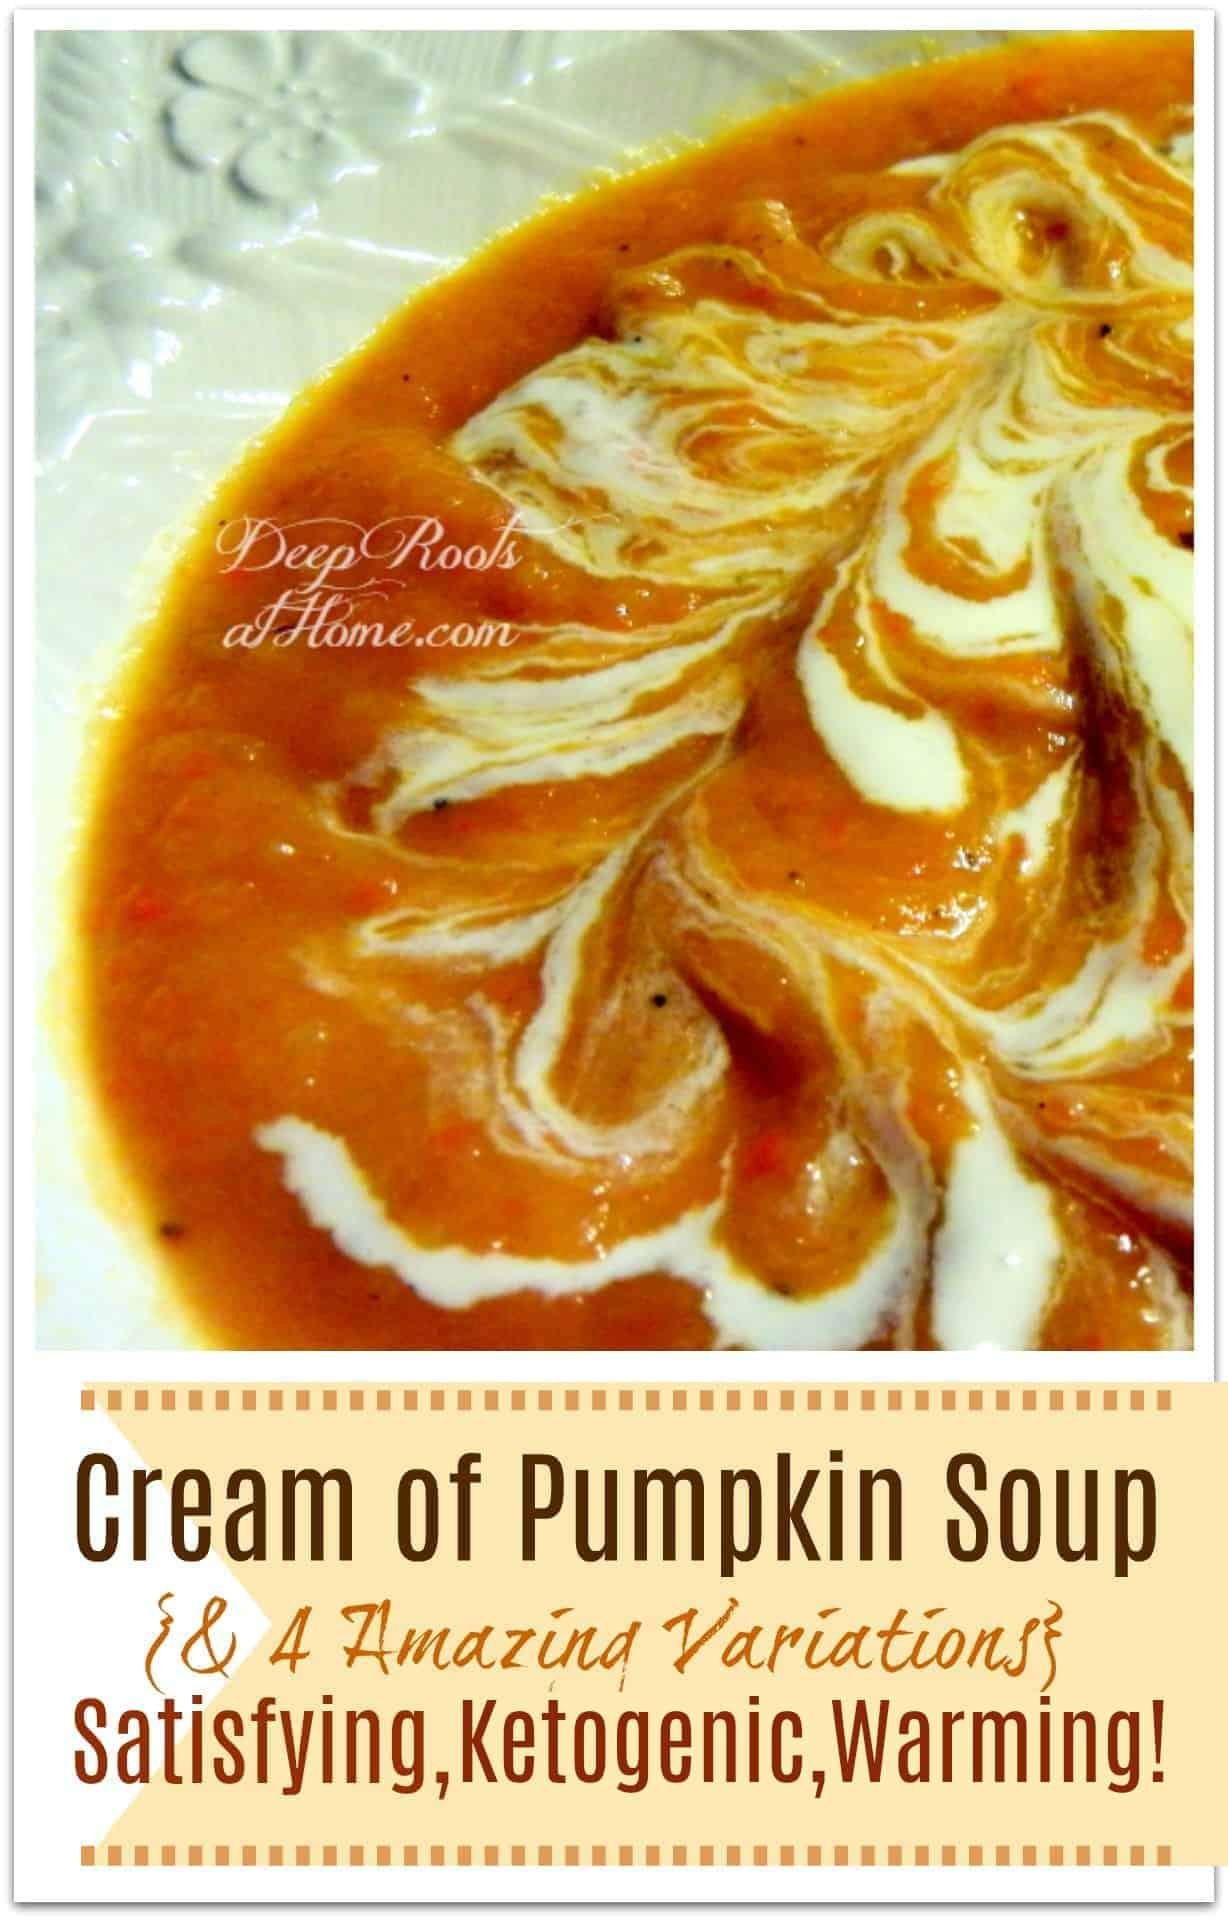 Cream of Pumpkin Soup & 4 Variations: Satisfying, Ketogenic, Warming! A big bowl of warming cream of pumpkin soup!